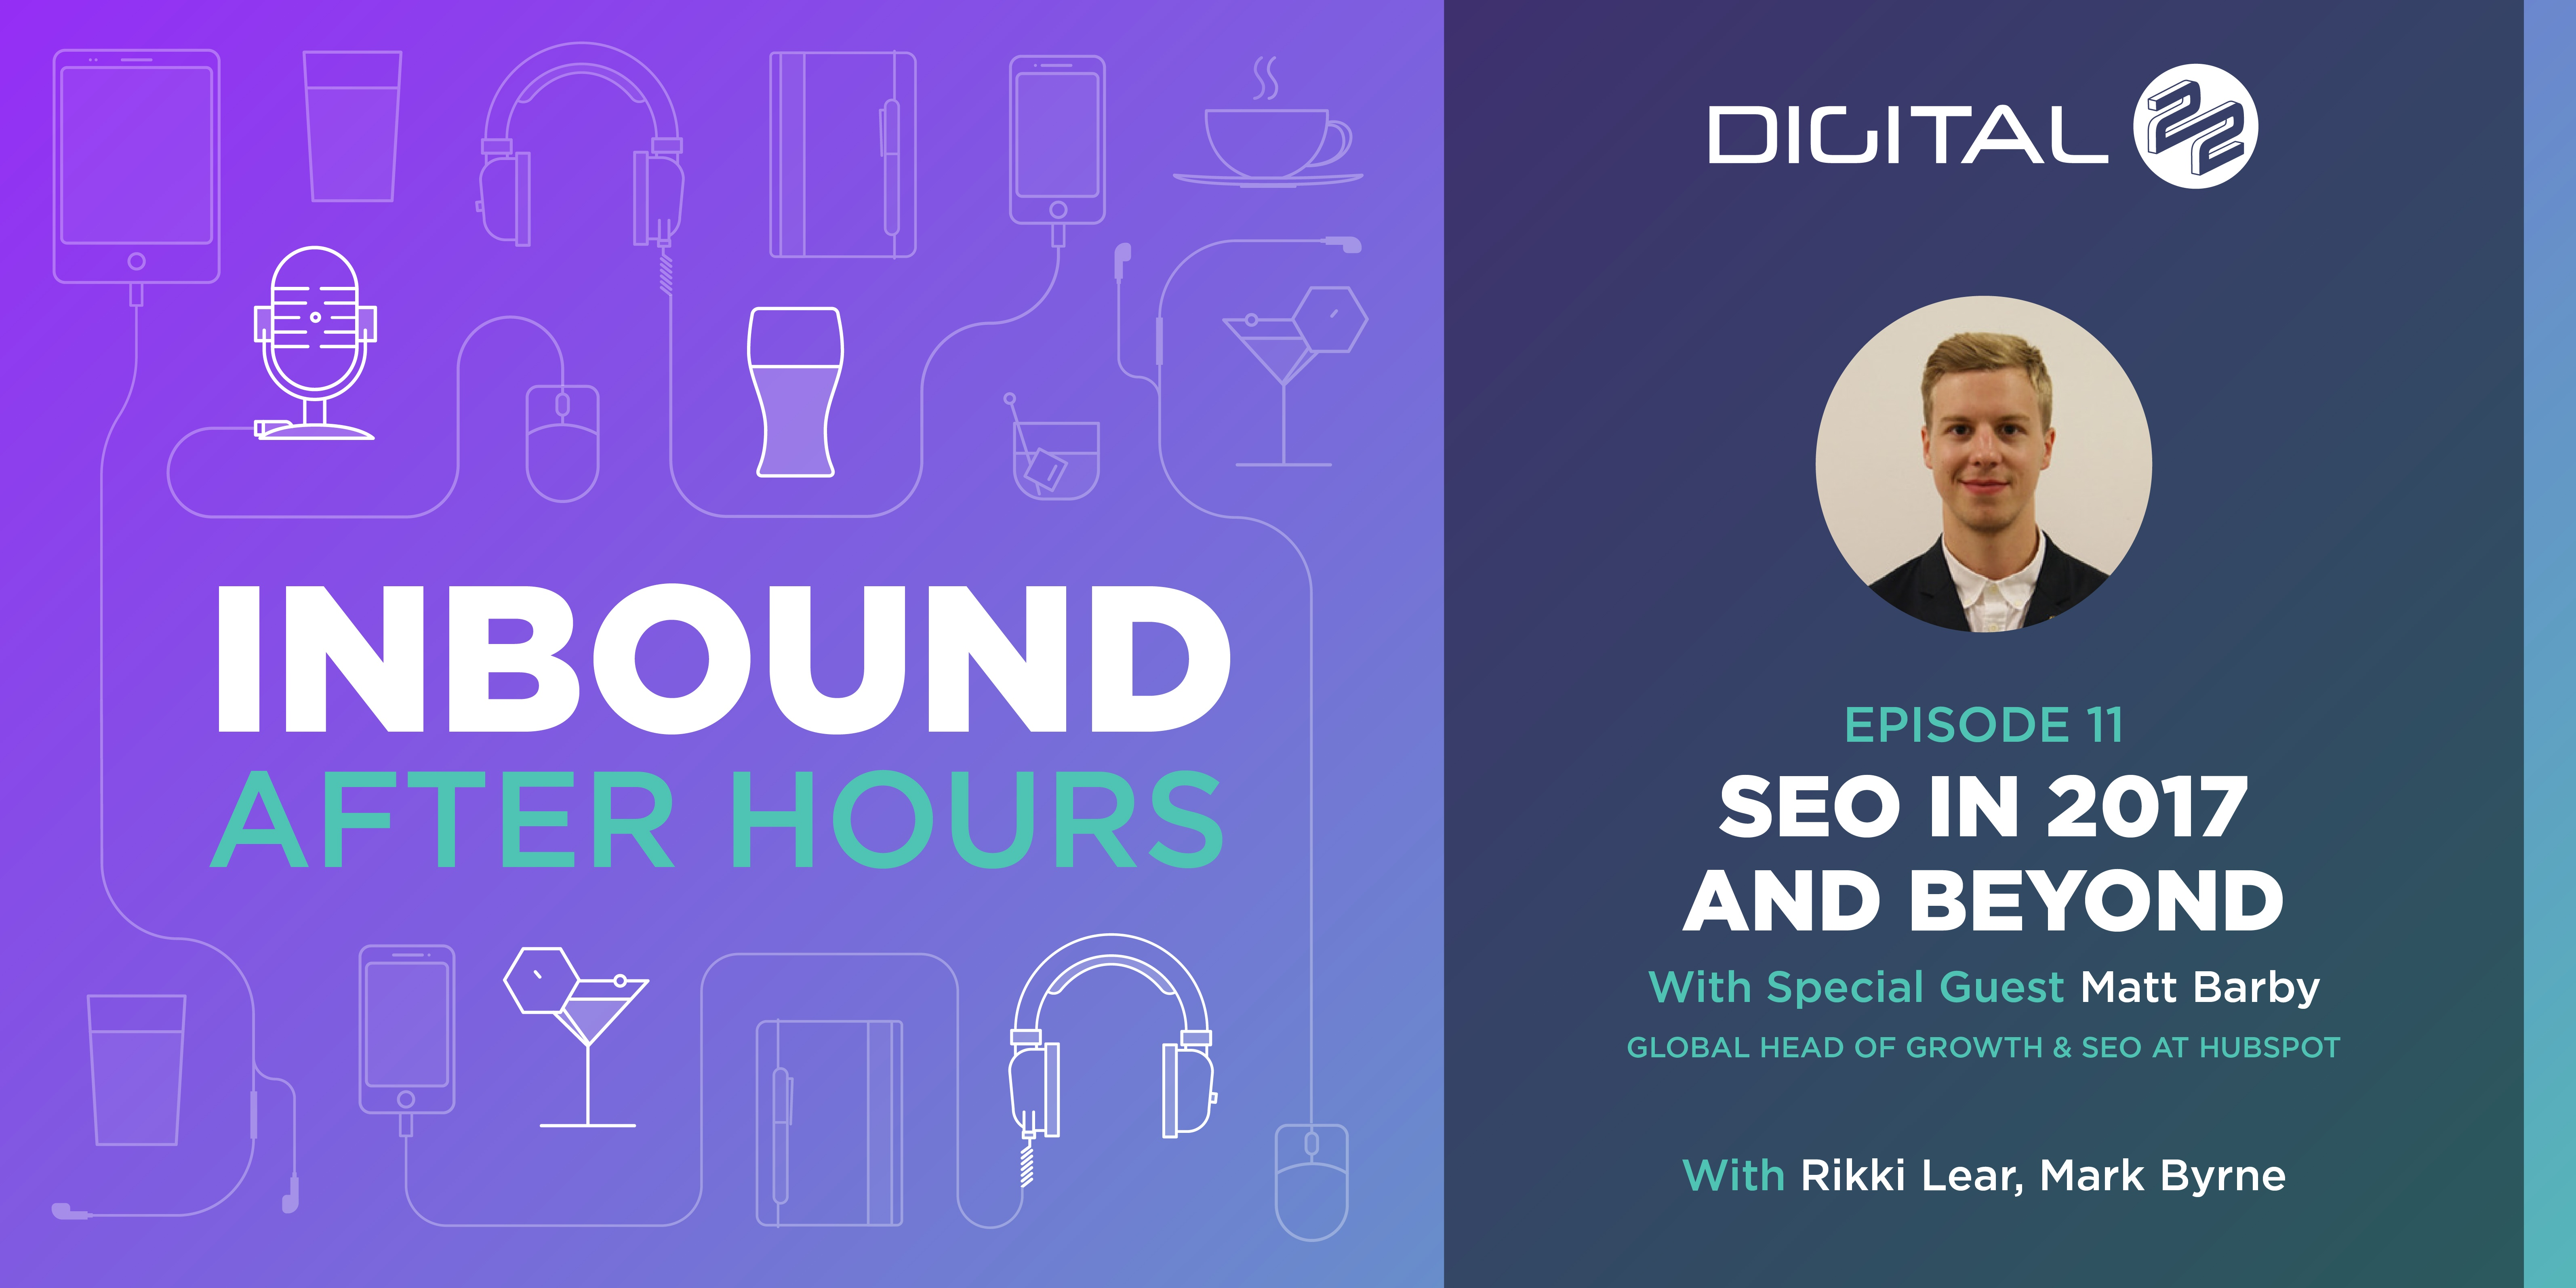 SEO in 2017 & Beyond with Matthew Barby (Global Head of Growth & SEO at HubSpot) - Inbound After Hours - Ep 11